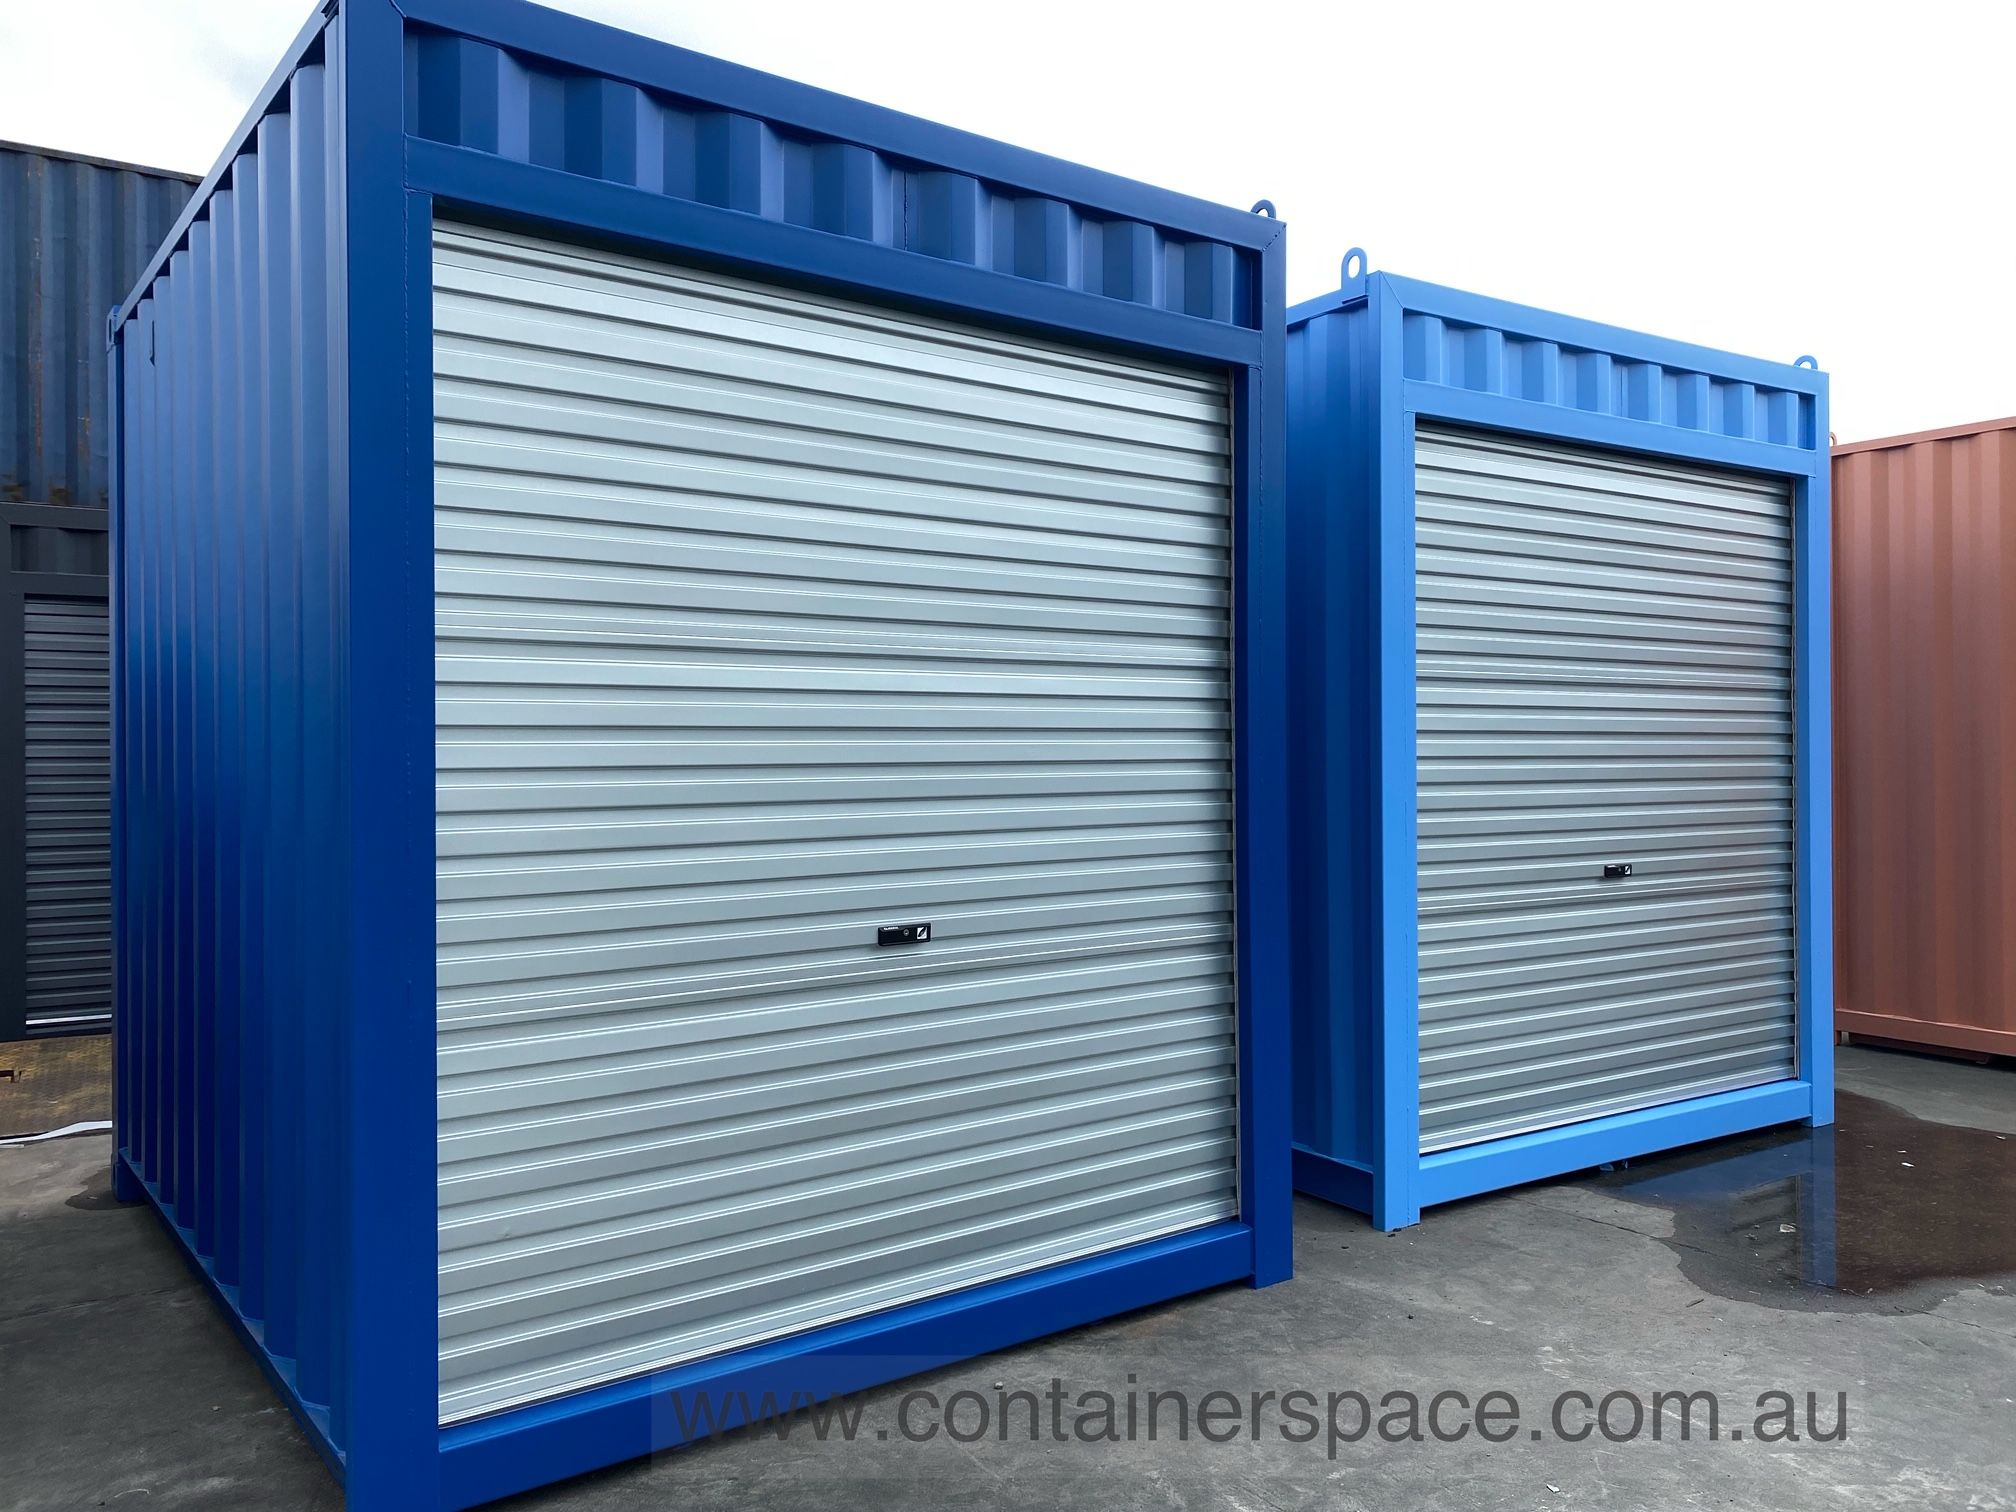 Shipping Containers For Sale In Melbourne Containerspace In 2020 Containers For Sale Shipping Containers For Sale Roller Doors